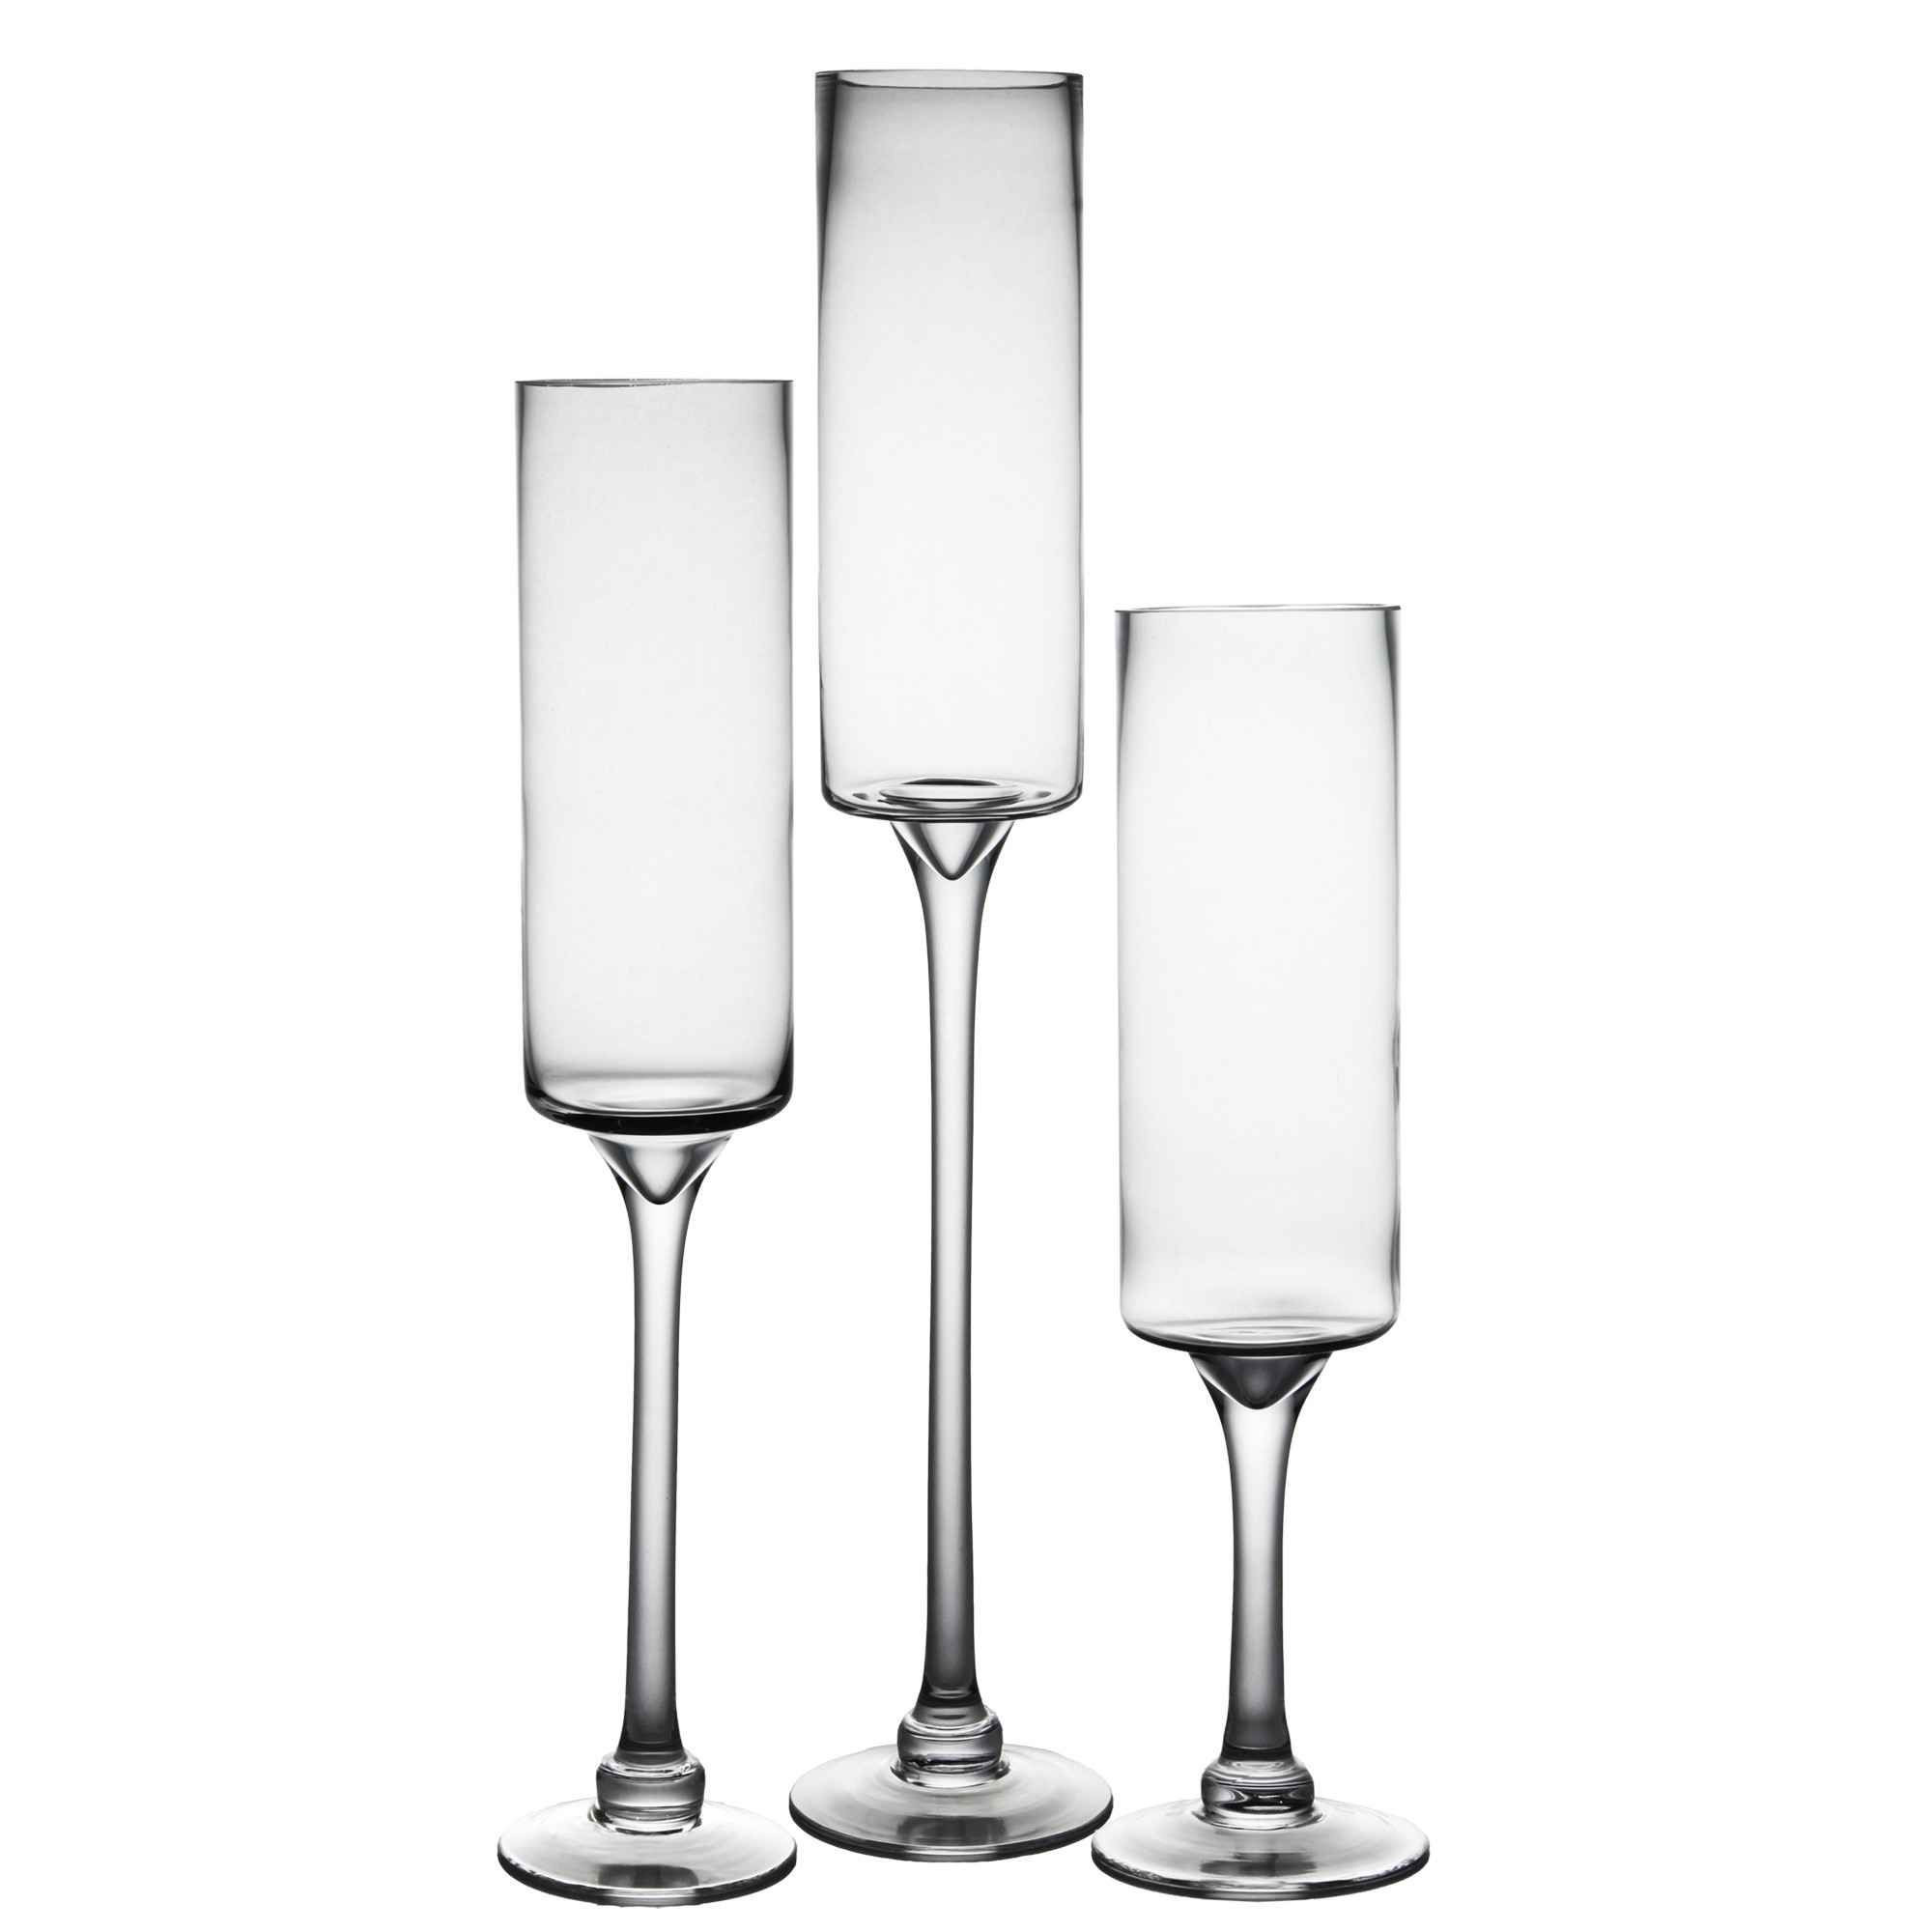 5 clear glass square vases of big glass vase beautiful l h vases 12 inch hurricane clear glass regarding big glass vase beautiful l h vases 12 inch hurricane clear glass vase i 0d cheap in